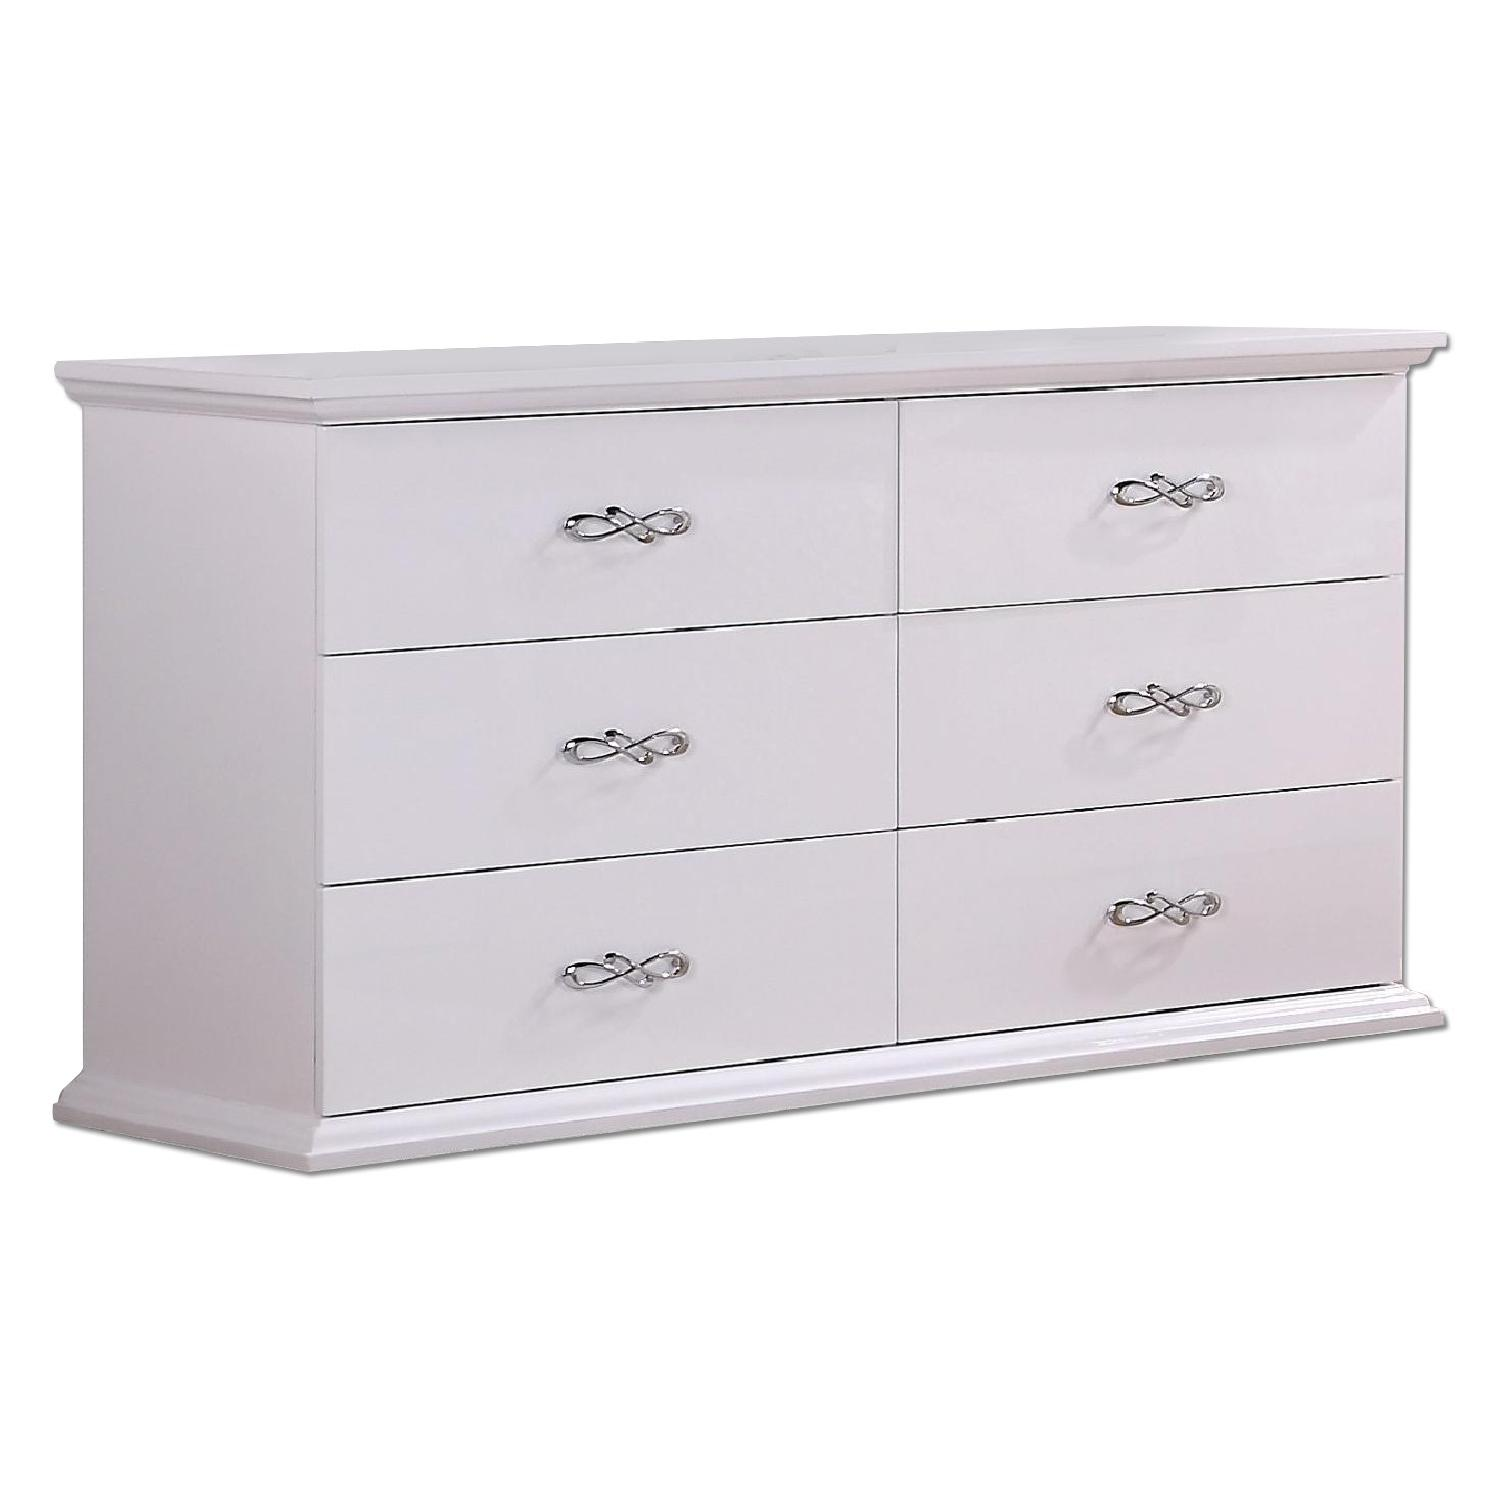 6-Drawer Dresser in White Lacquer w/ Artistic Handles